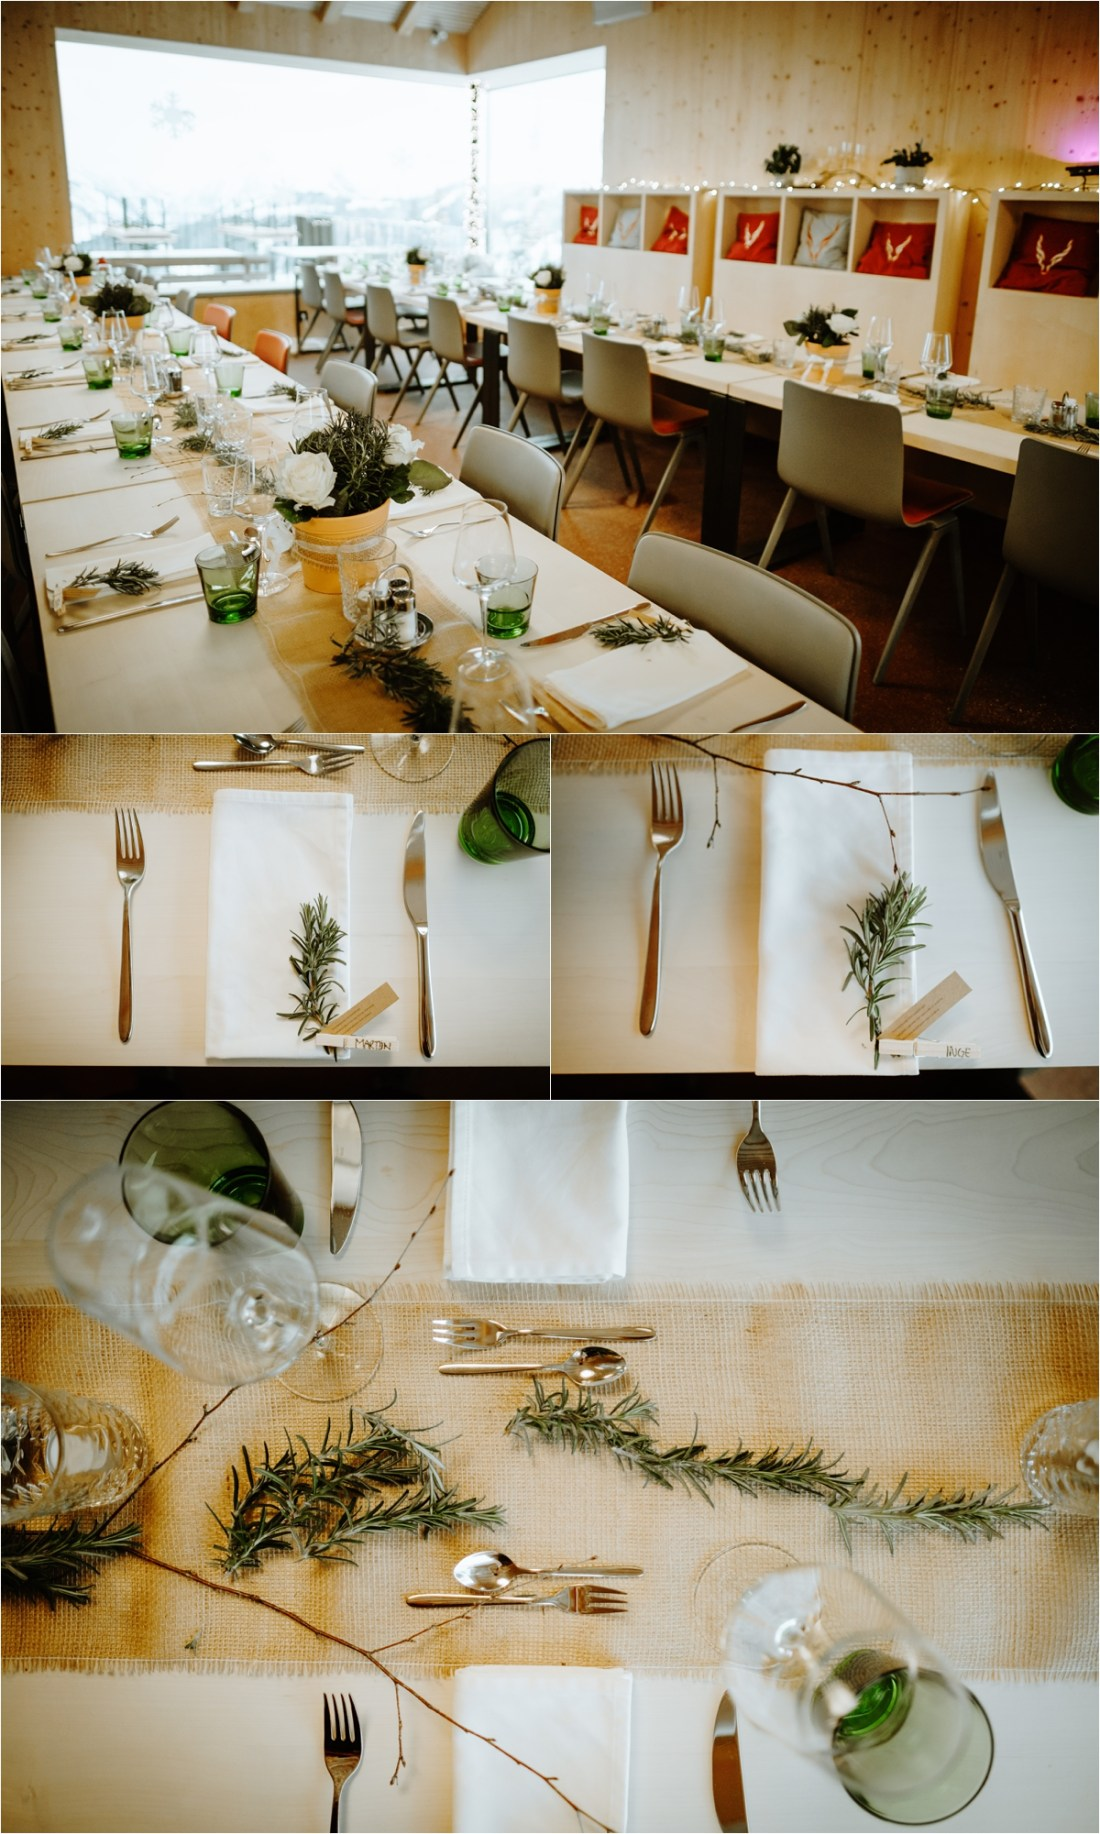 Simple, rustic wedding reception details in the Schmiedhof alm mountain restaurant in the Austrian Alps by Wild Connections Photography